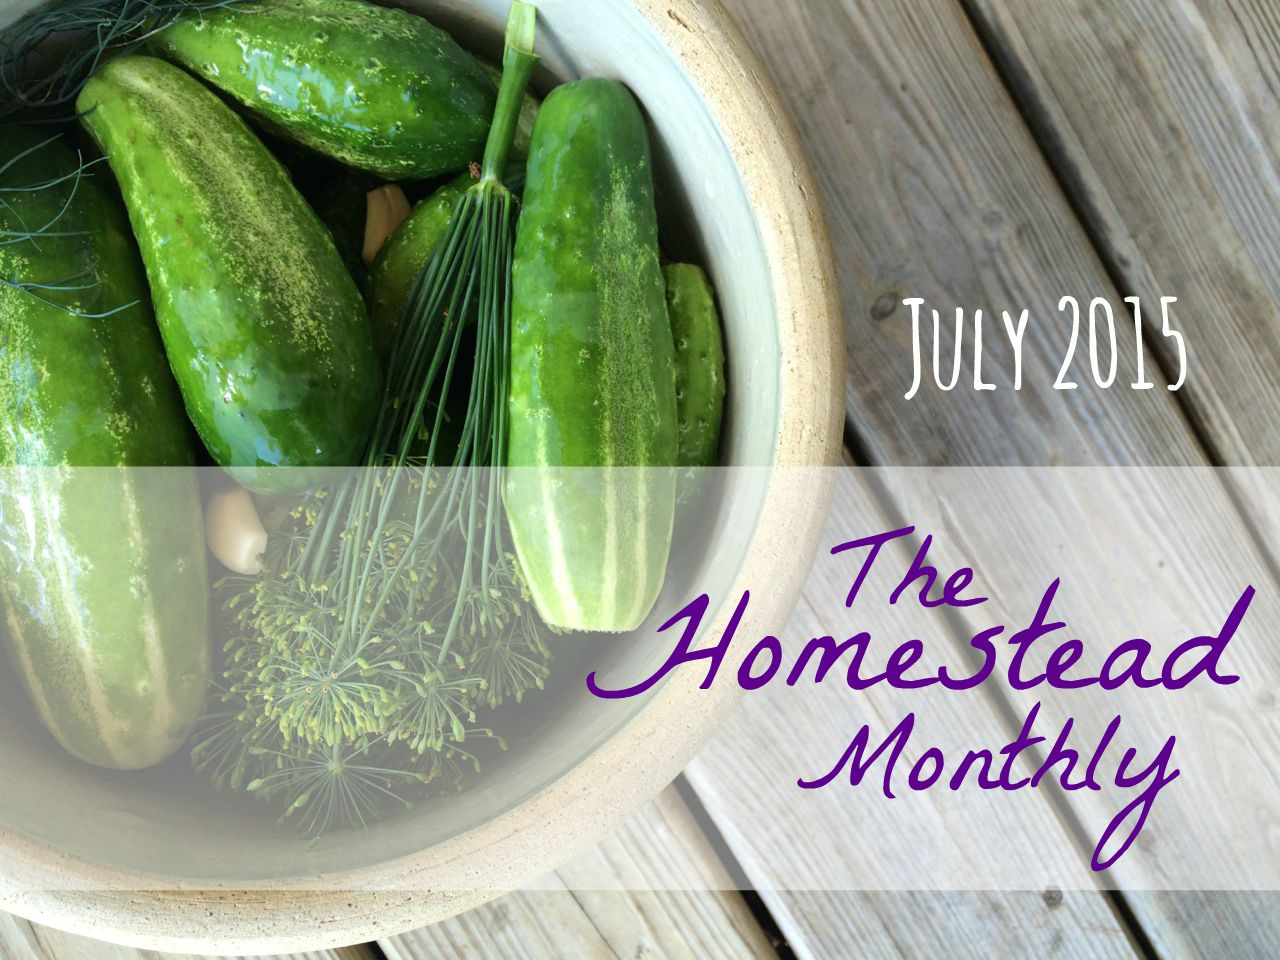 The Homestead Monthly: July 2015